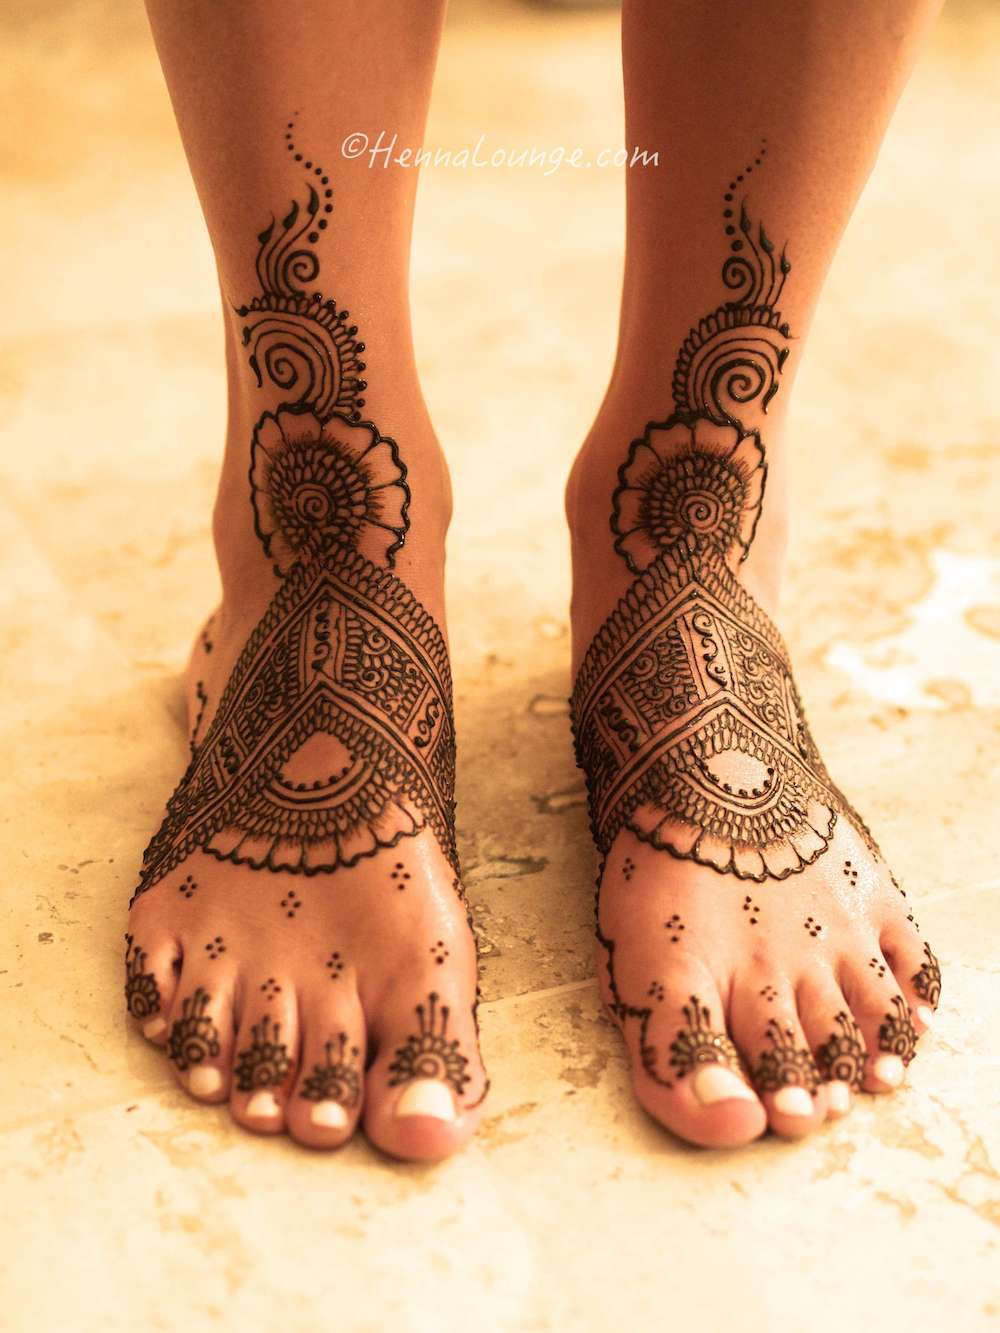 Henna at Sandos resort, without sandals.